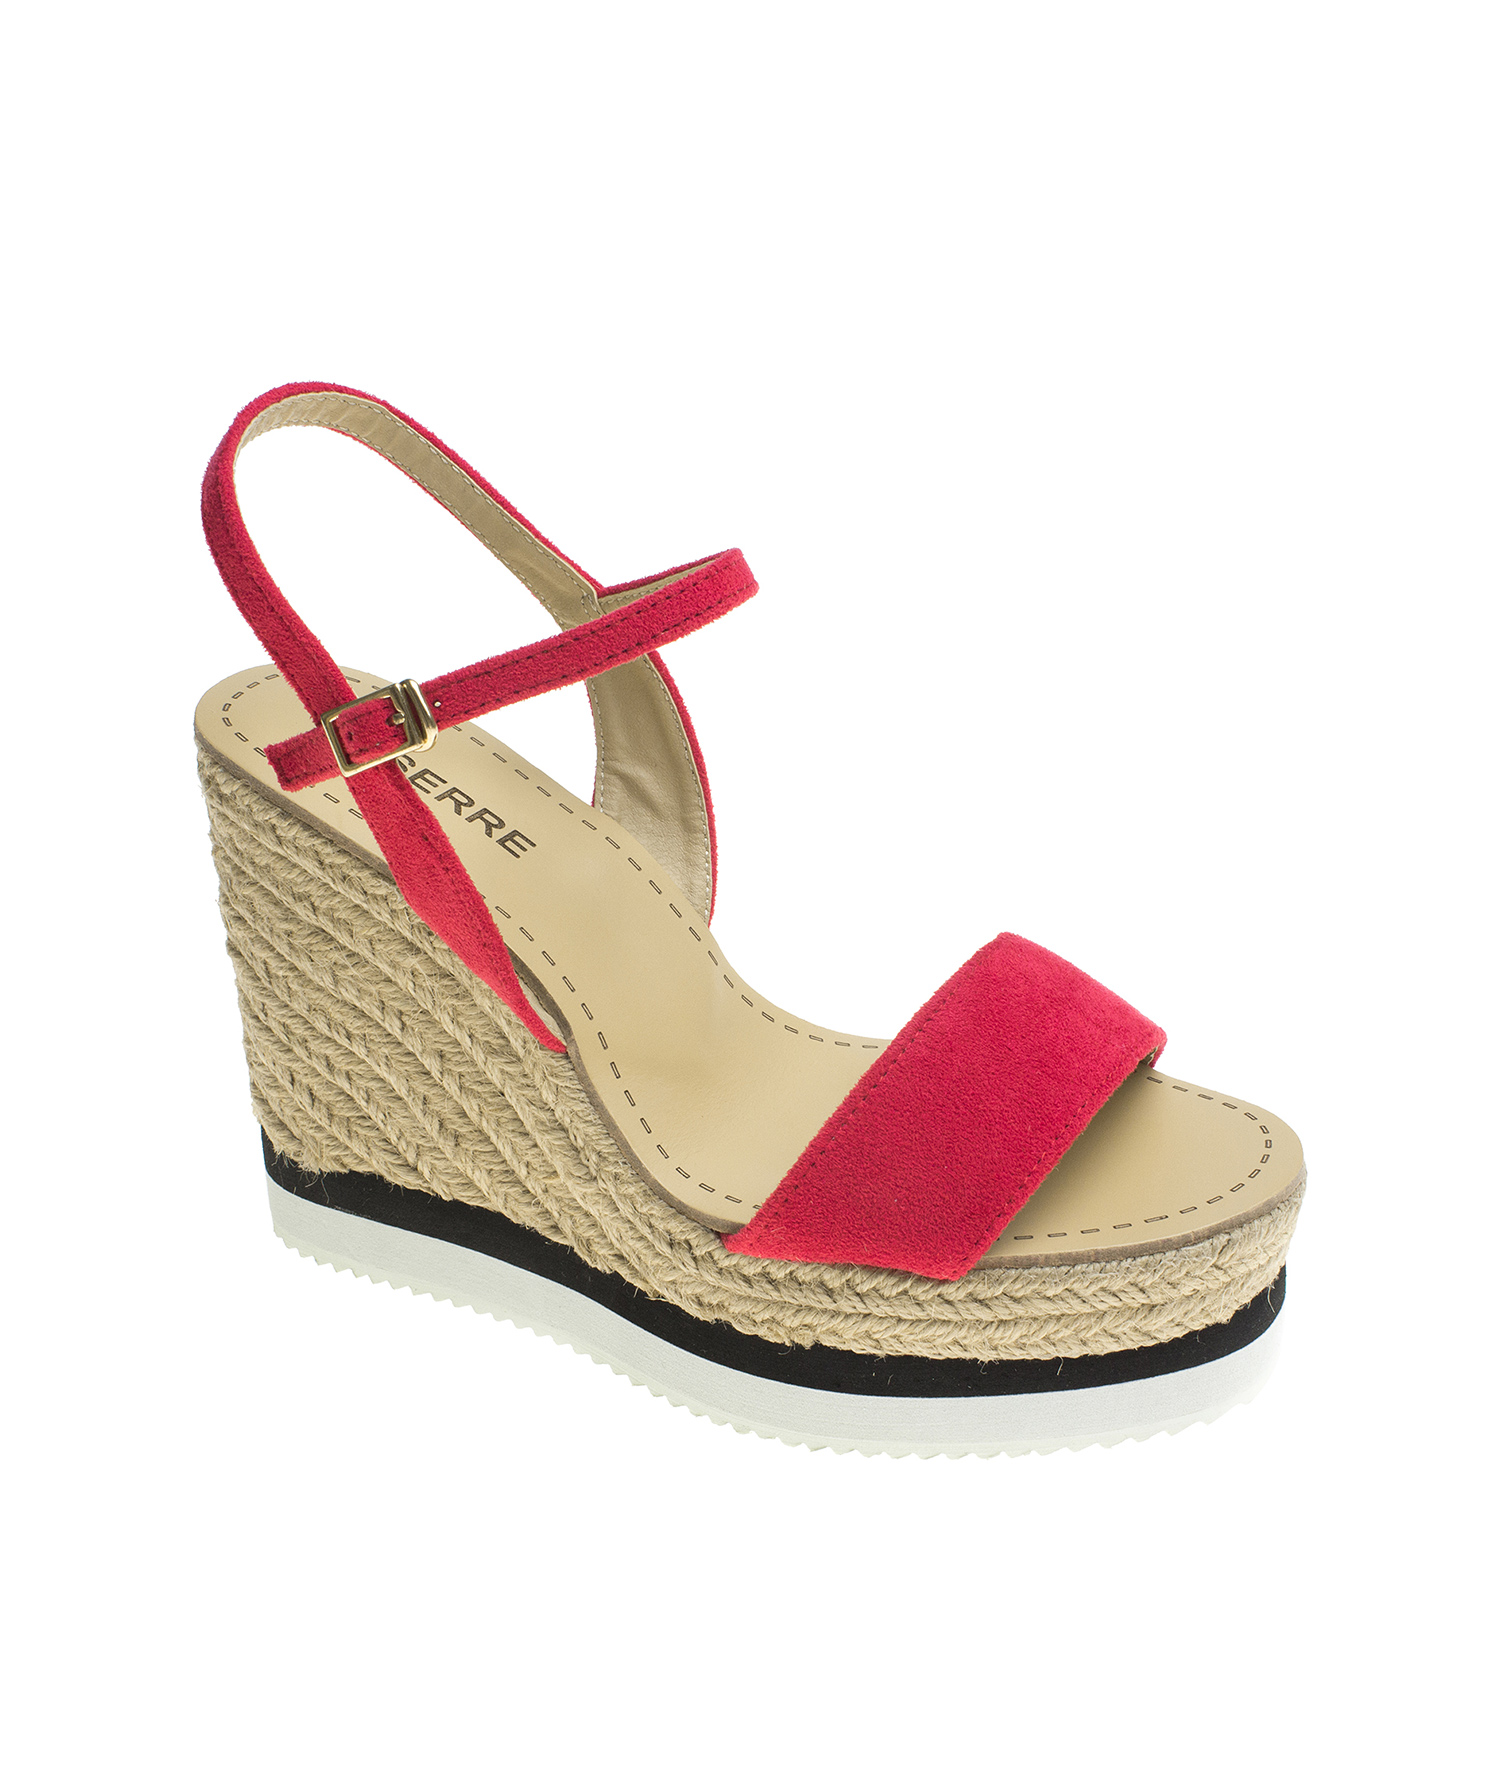 2879539c88c AnnaKastle Womens Suede Ankle Strap Espadrille Wedge Sandal Cardinal